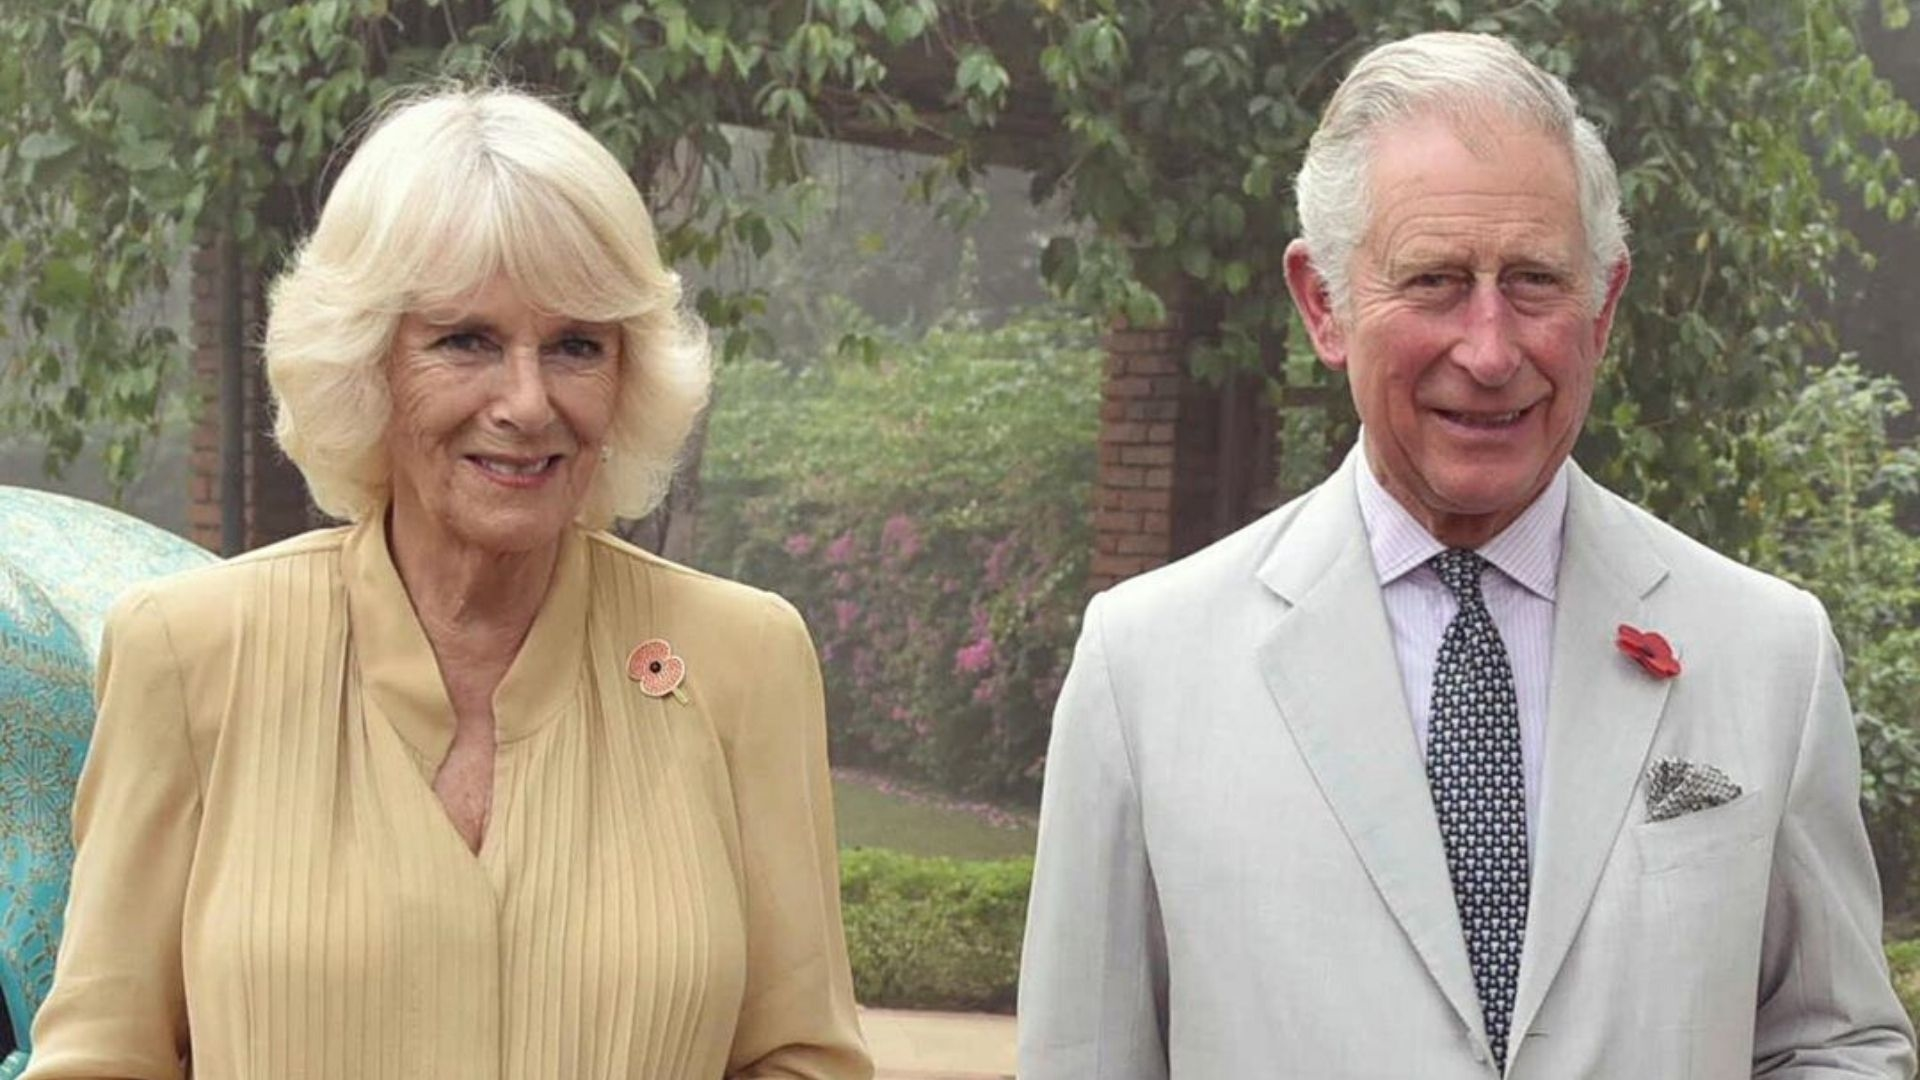 Prince Charles Just Shared His First-Ever Instagram Post